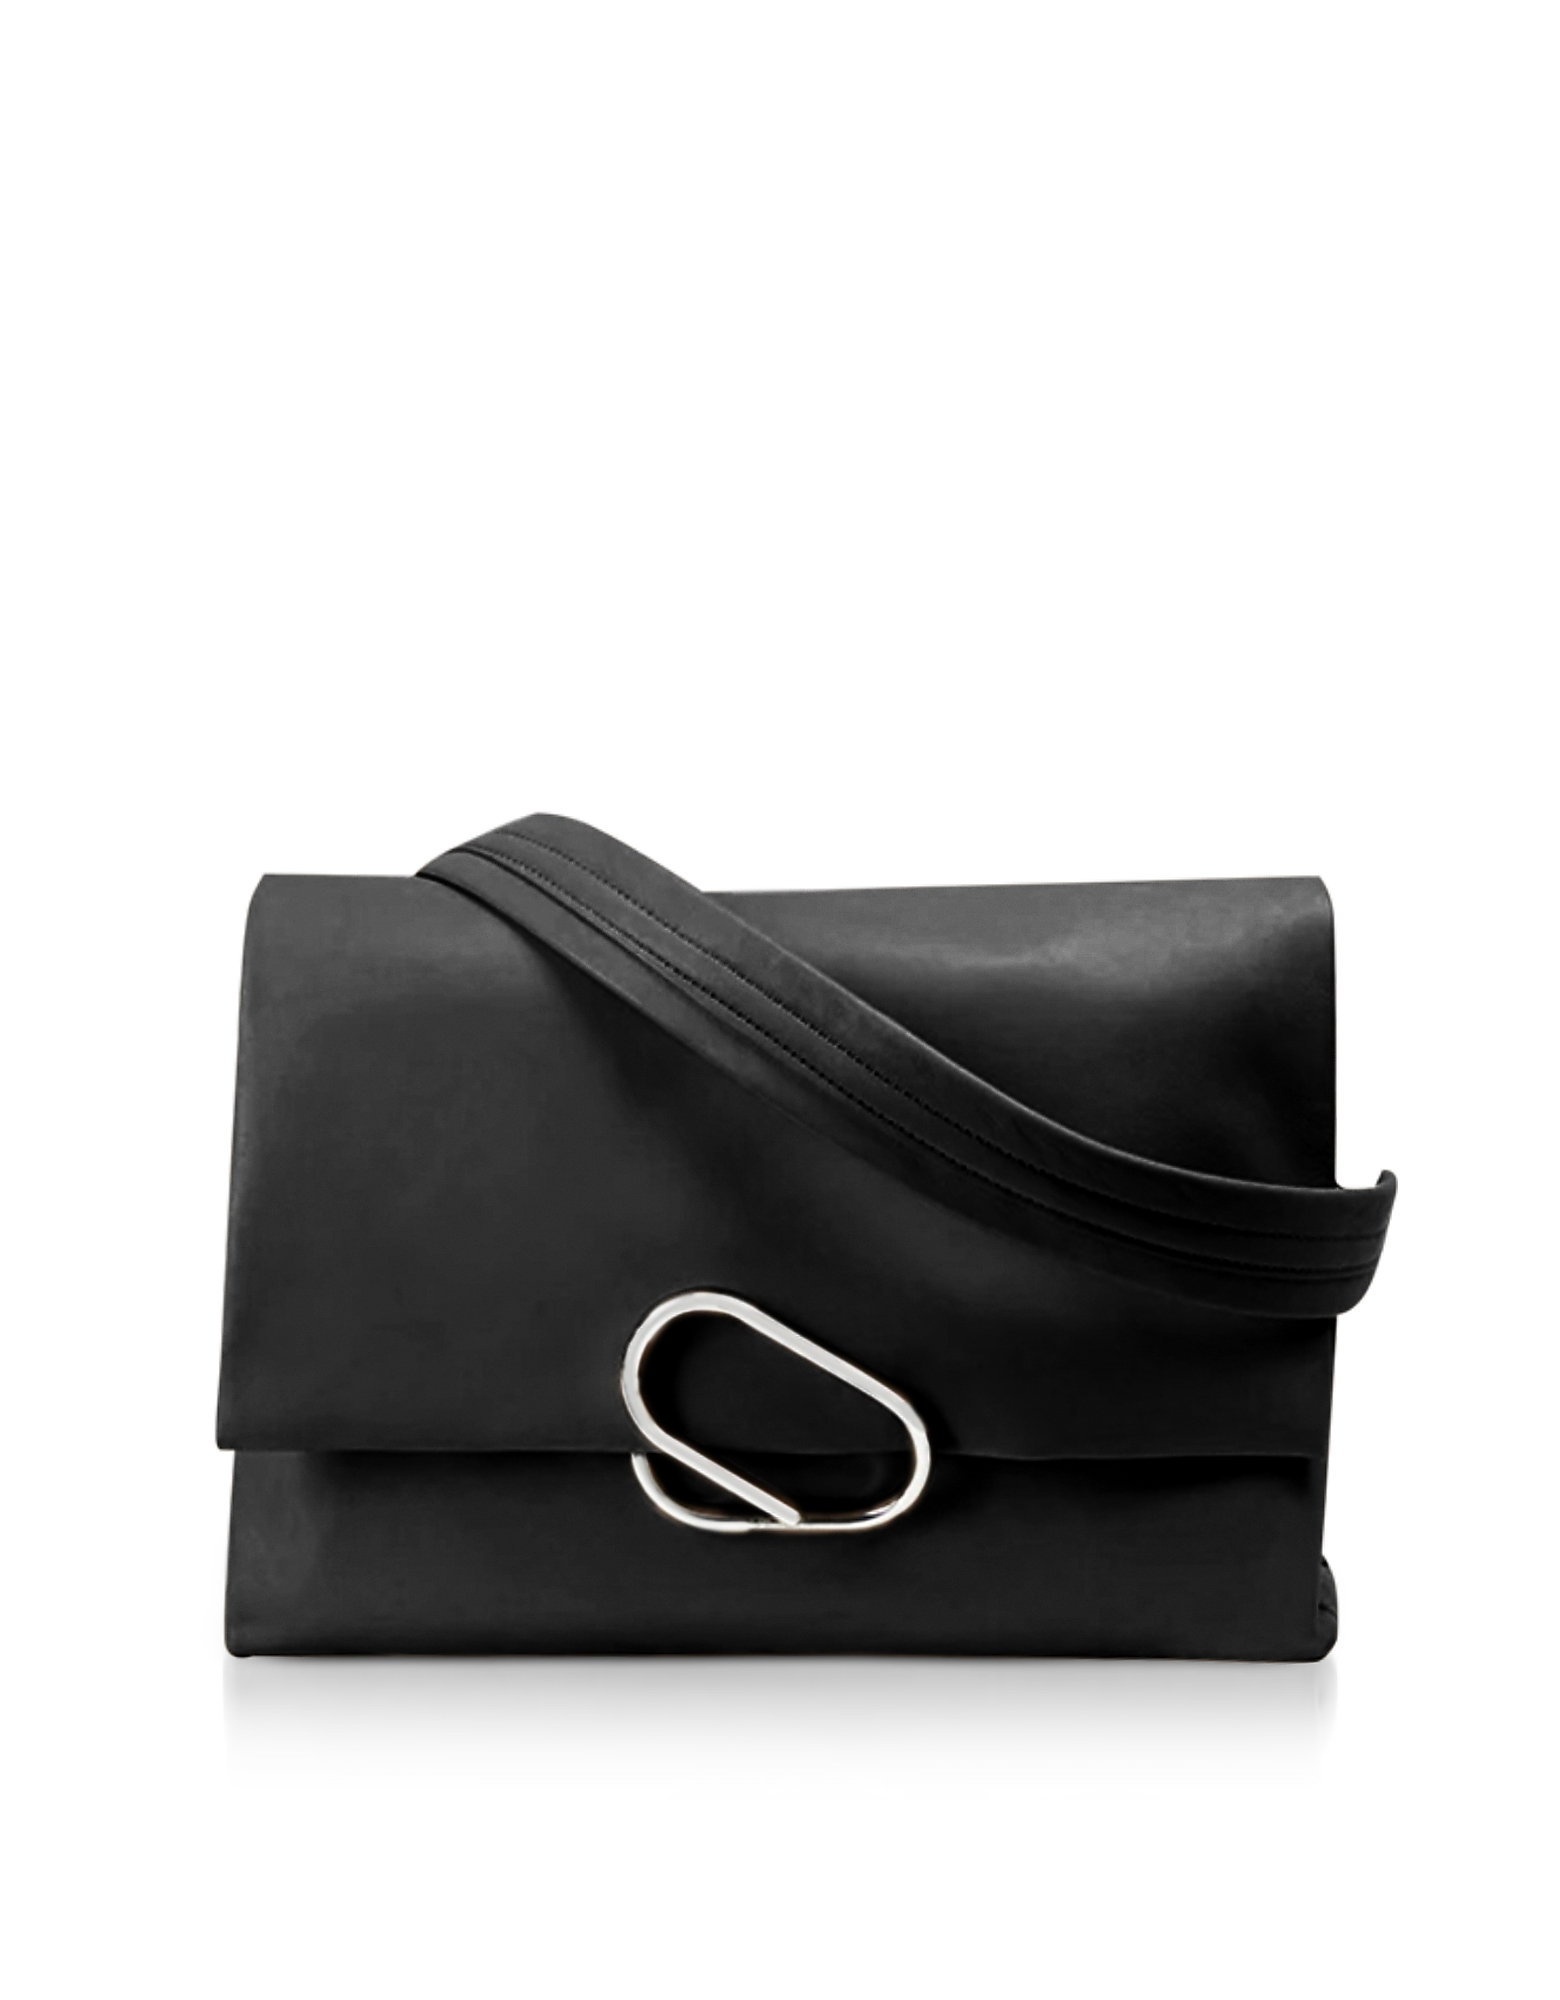 3.1 Phillip Lim Handbags, Alix Oversized Black Leather Shoulder Bag